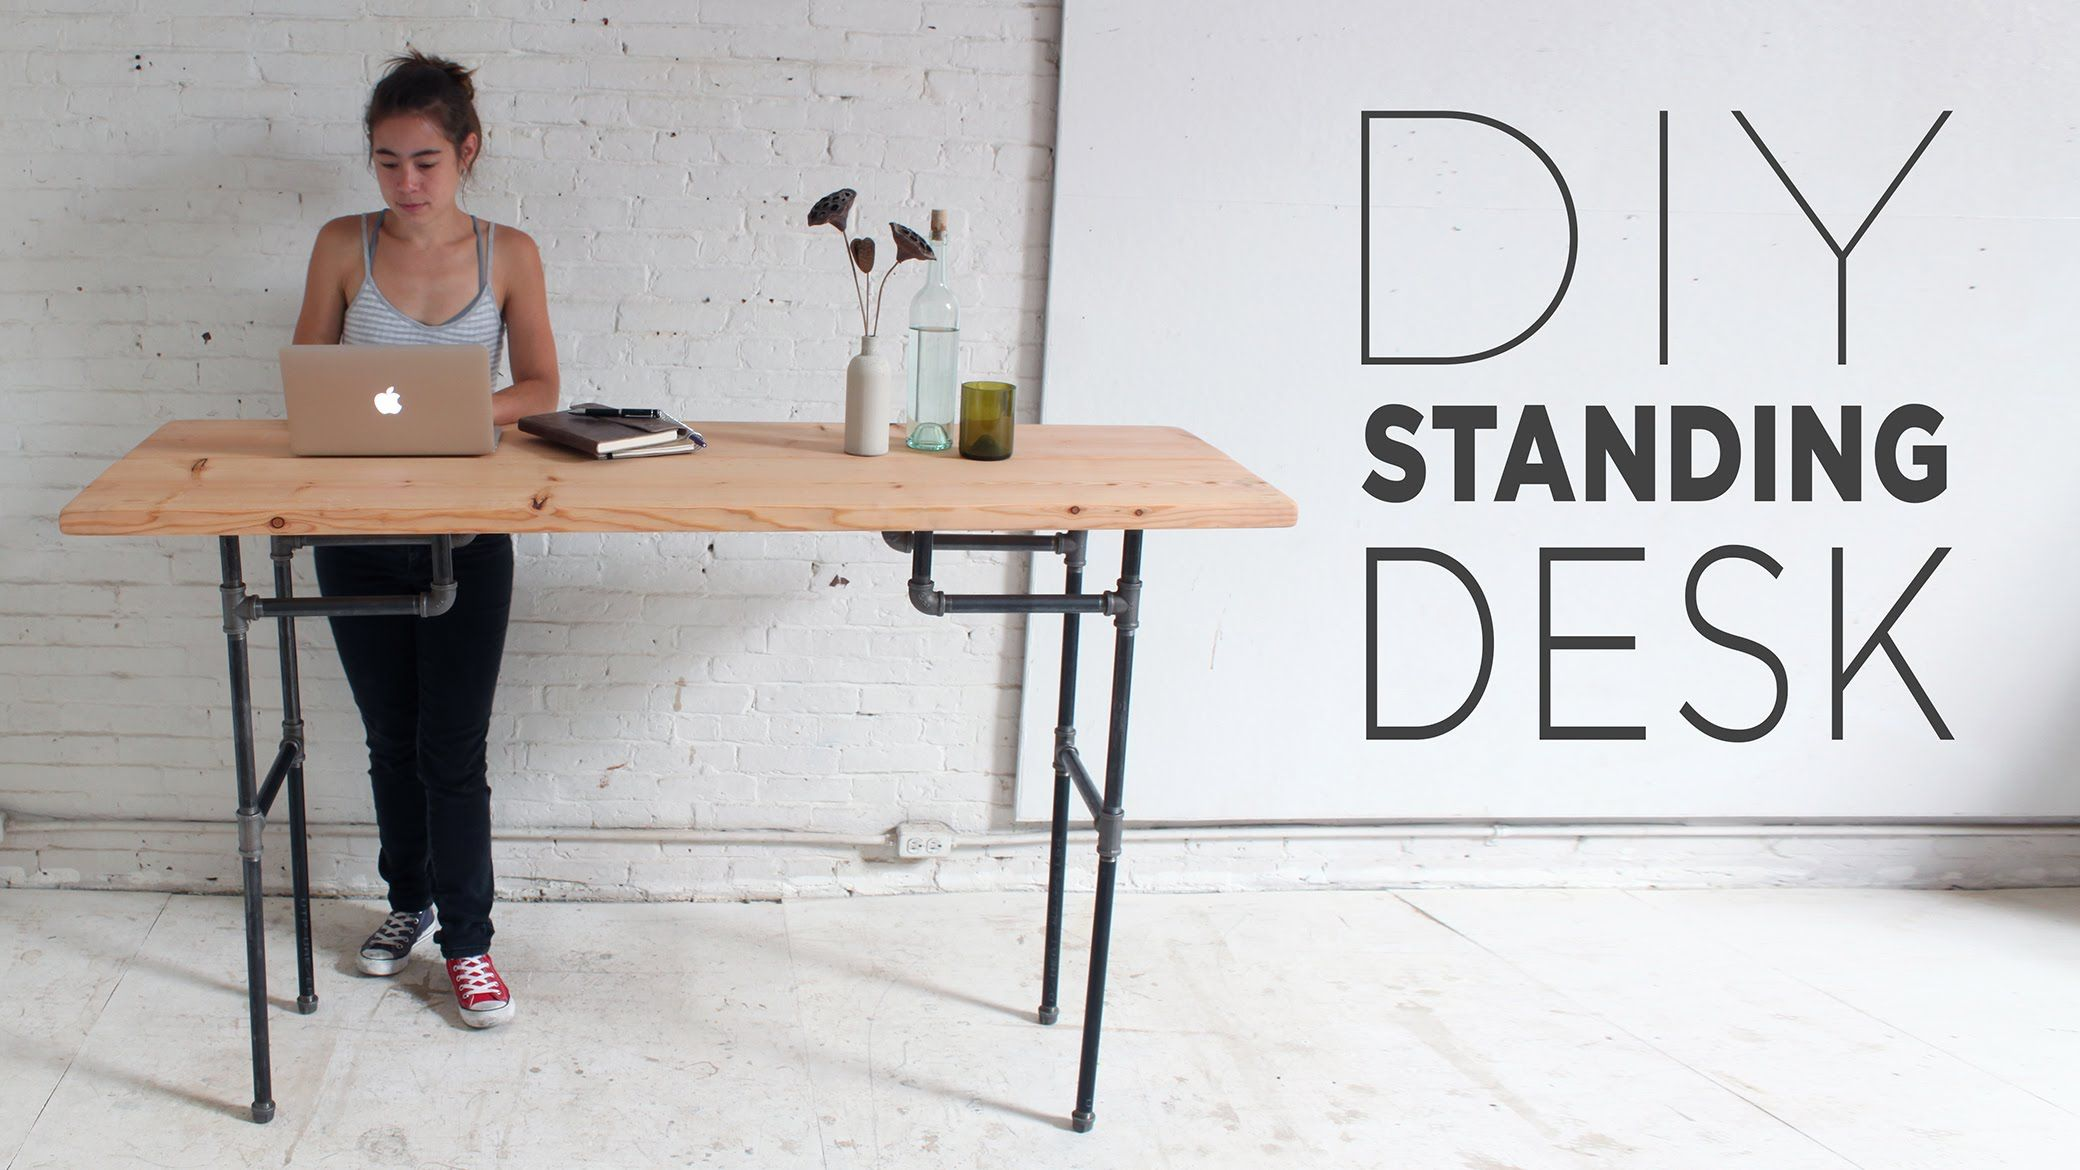 Build A Standing Desk That Converts To A Work Table Diy Standing Desk Standing Desk Plans Standing Desk Design